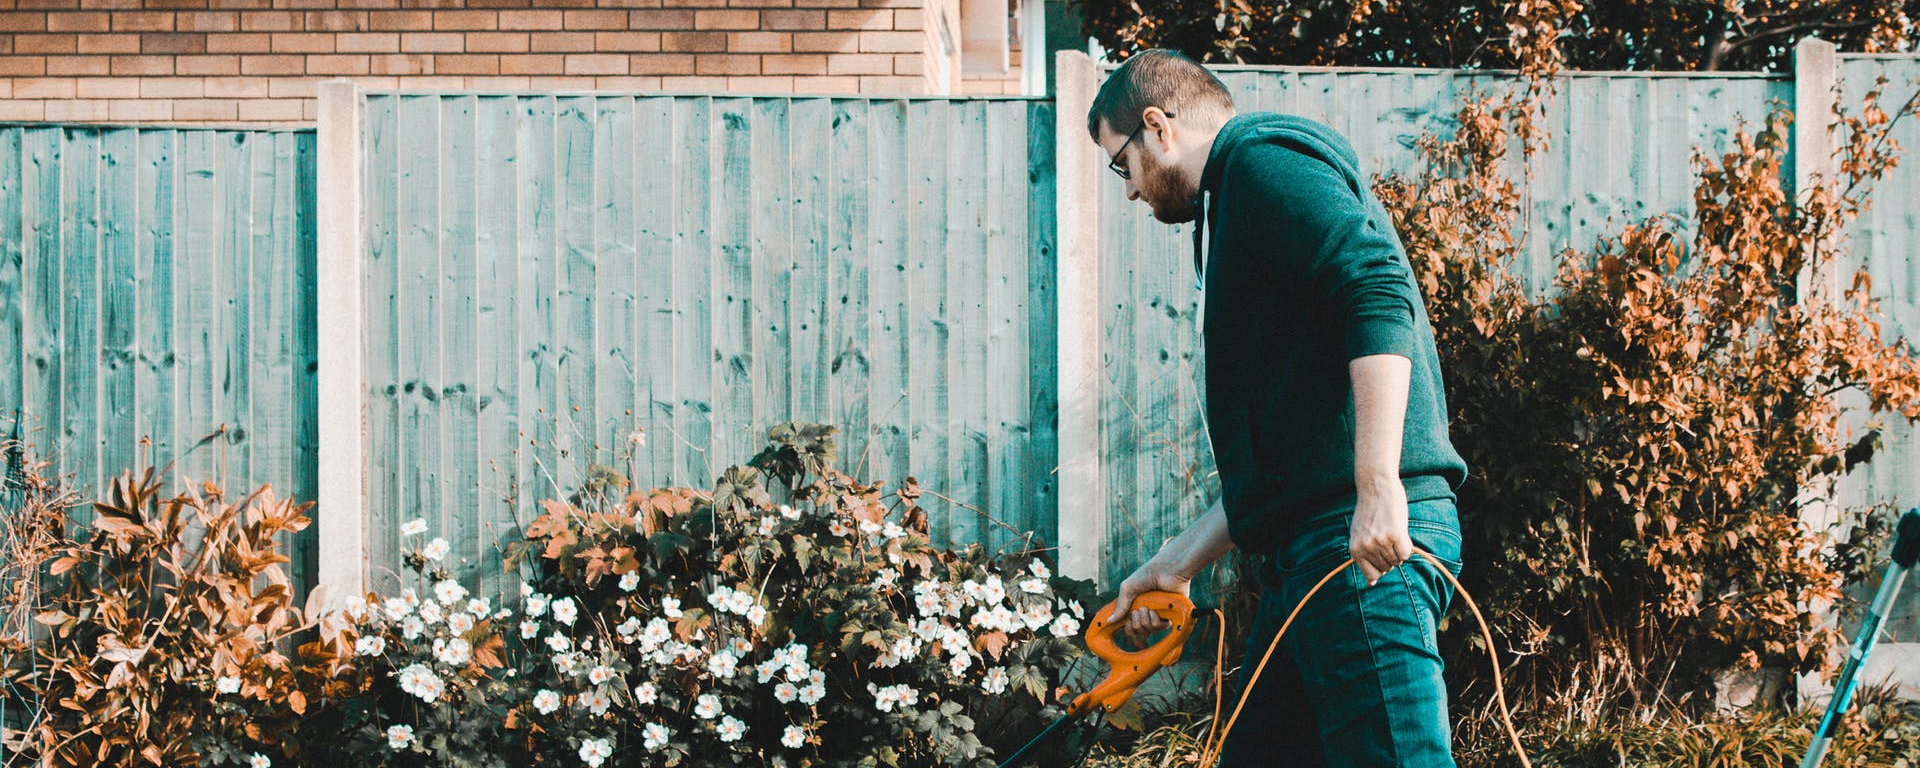 Get Set to Garden and Protect Yourself from Injury